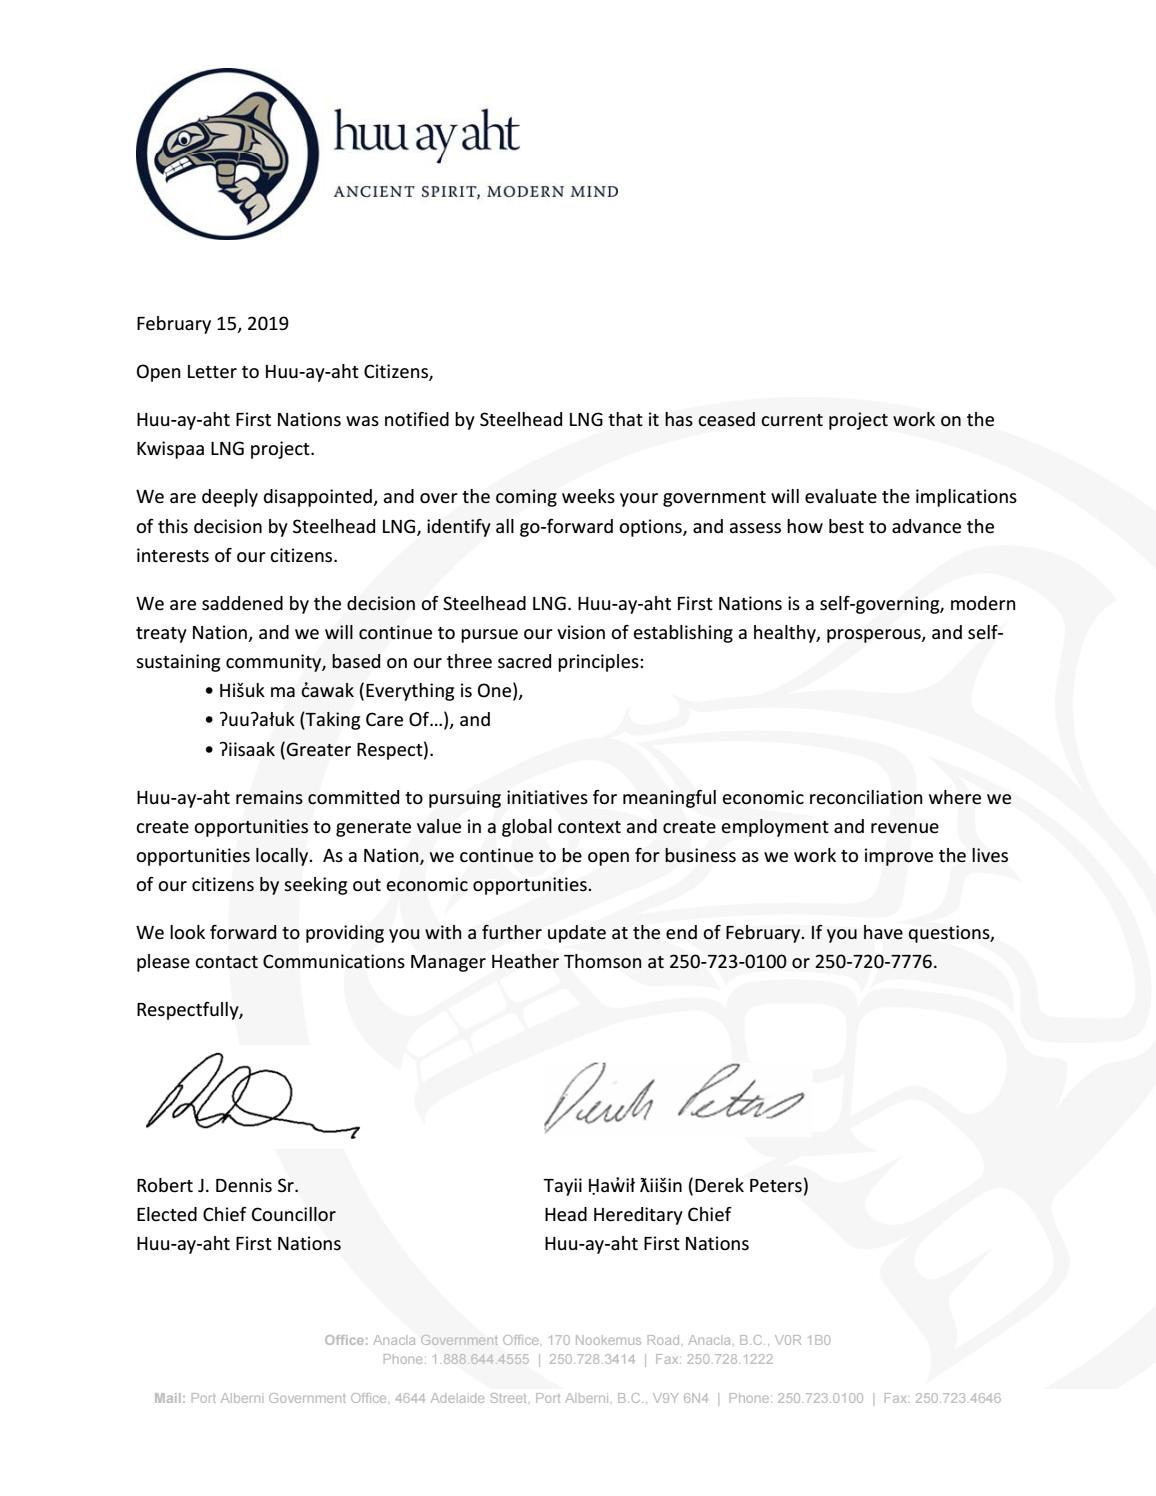 Huu-ay-aht First Nations would like to share the following open letter with  its citizens: